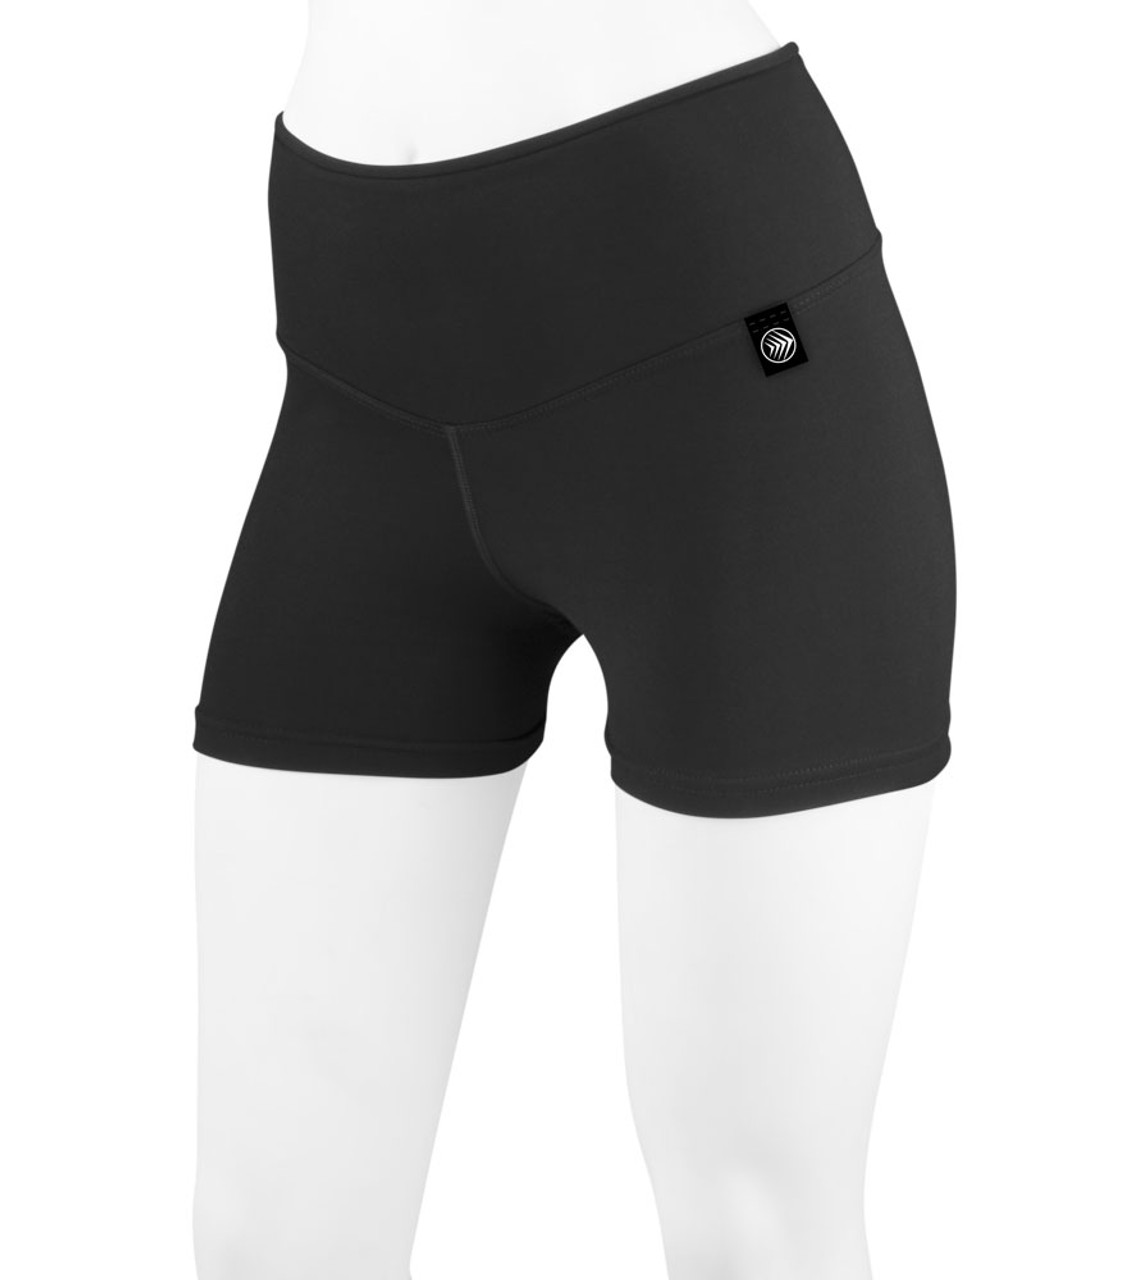 Aero Tech Designs Women/'s FIT 3 In Thrive UNPADDED Compression Booty Shorts